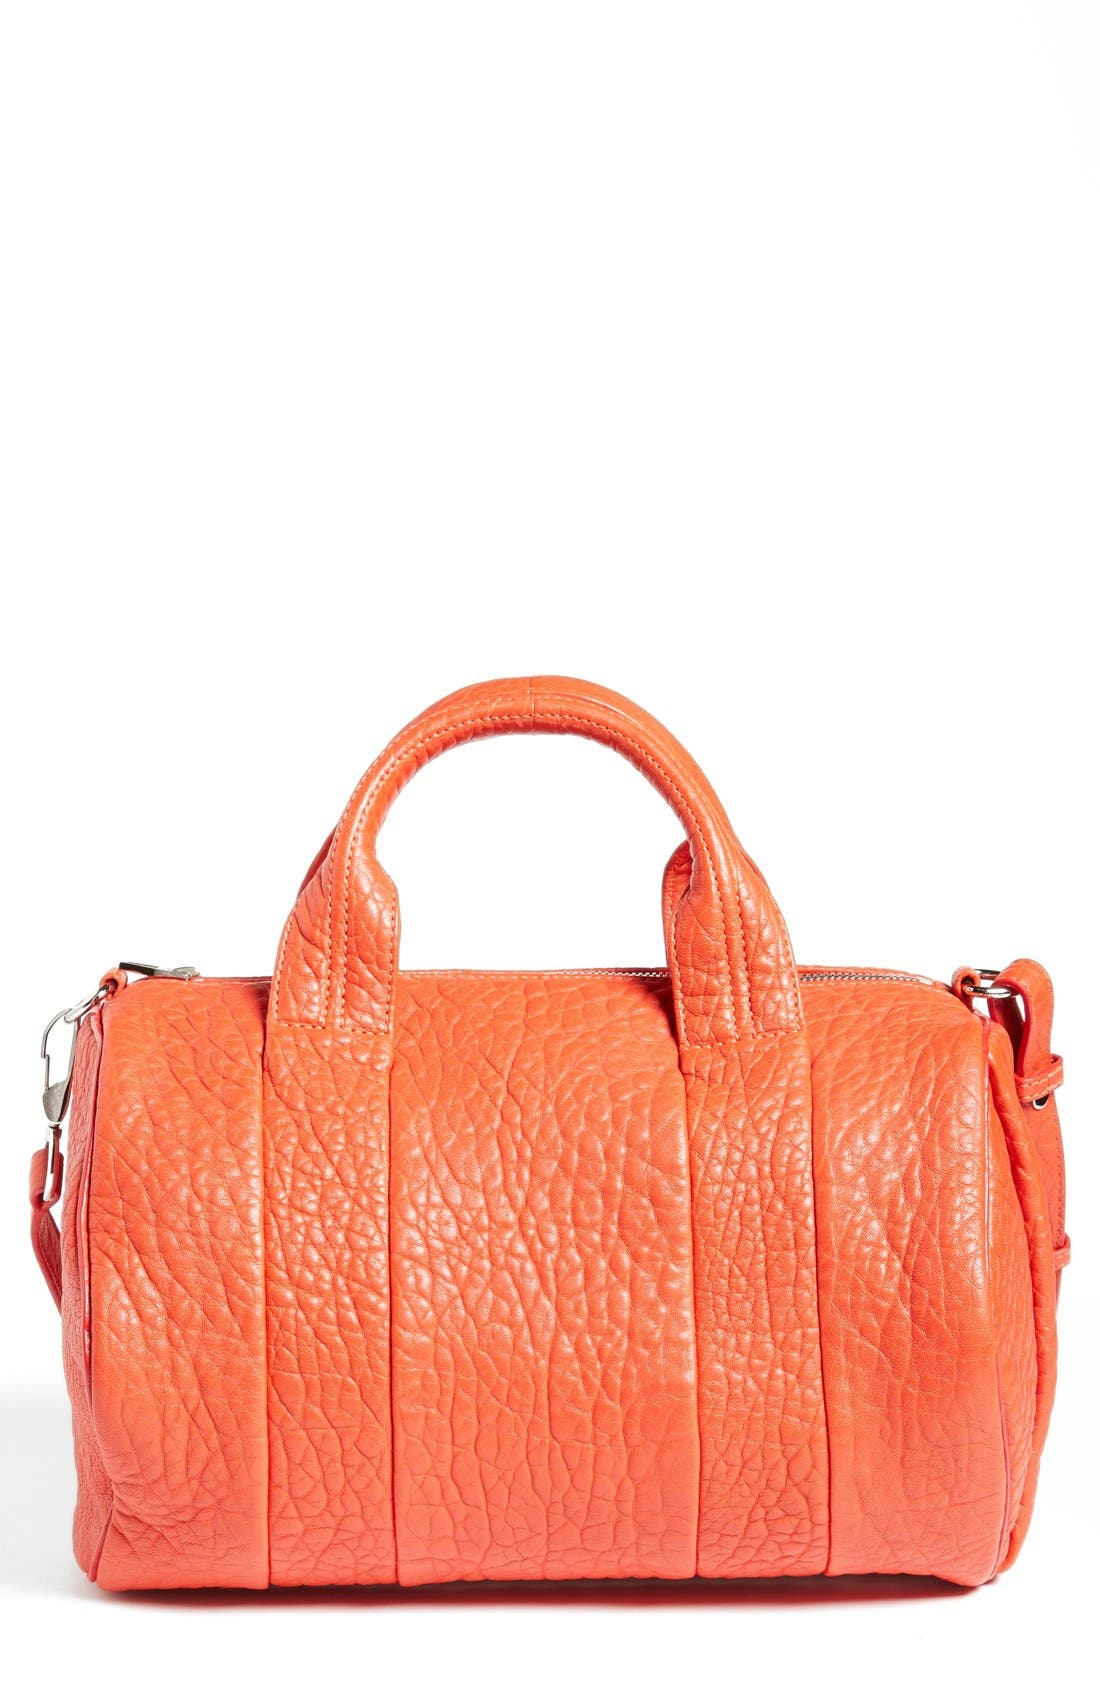 Main Image - Alexander Wang 'Rocco - Dumbo Nickel' Lambskin Leather Satchel